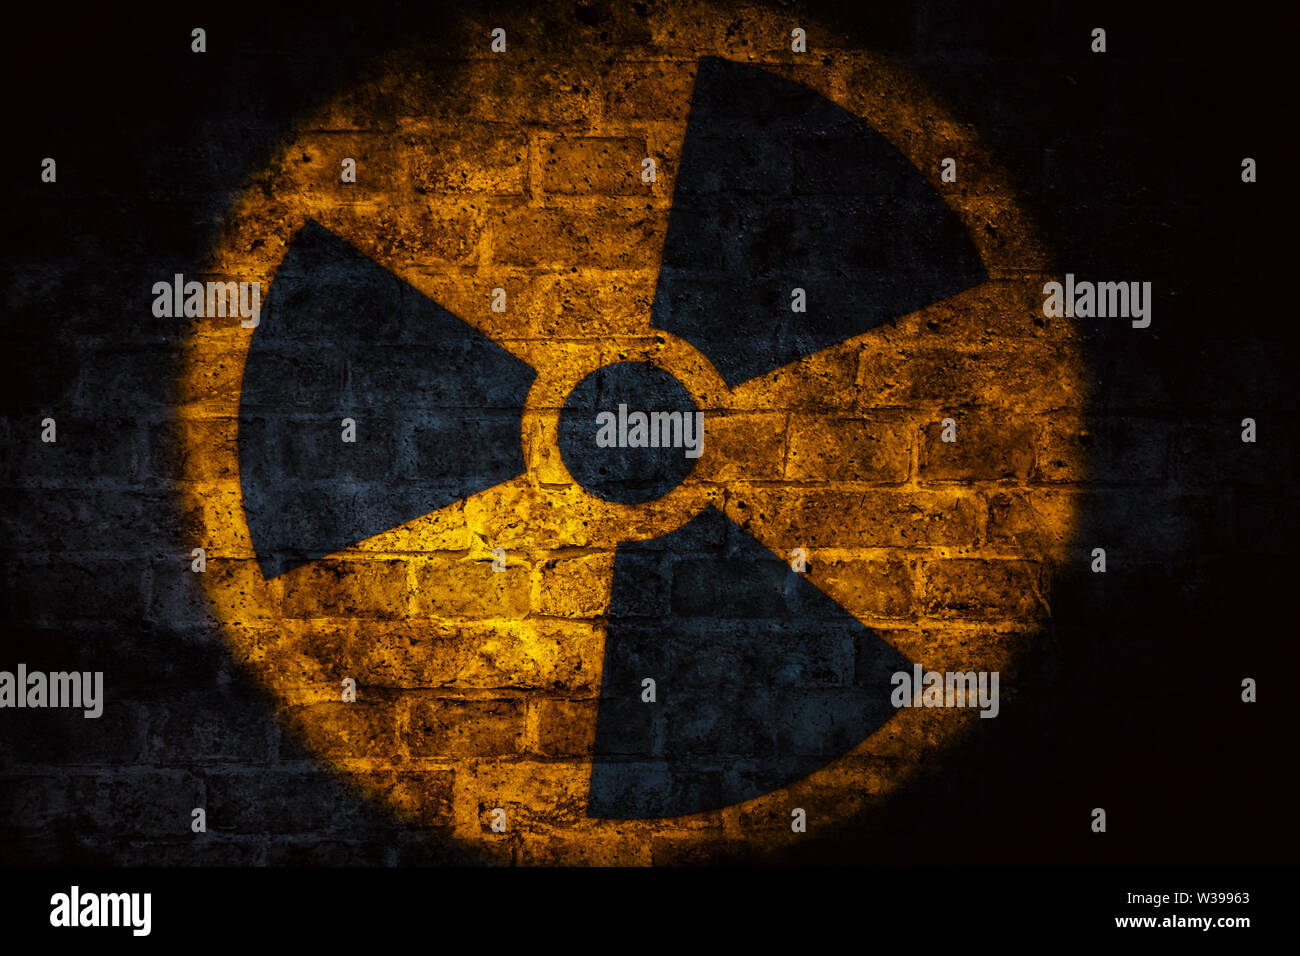 Nuclear energy radioactive (ionizing atomic radiation) round yellow symbol shape painted on brick concrete cement wall texture dark background. Nuclea - Stock Photo